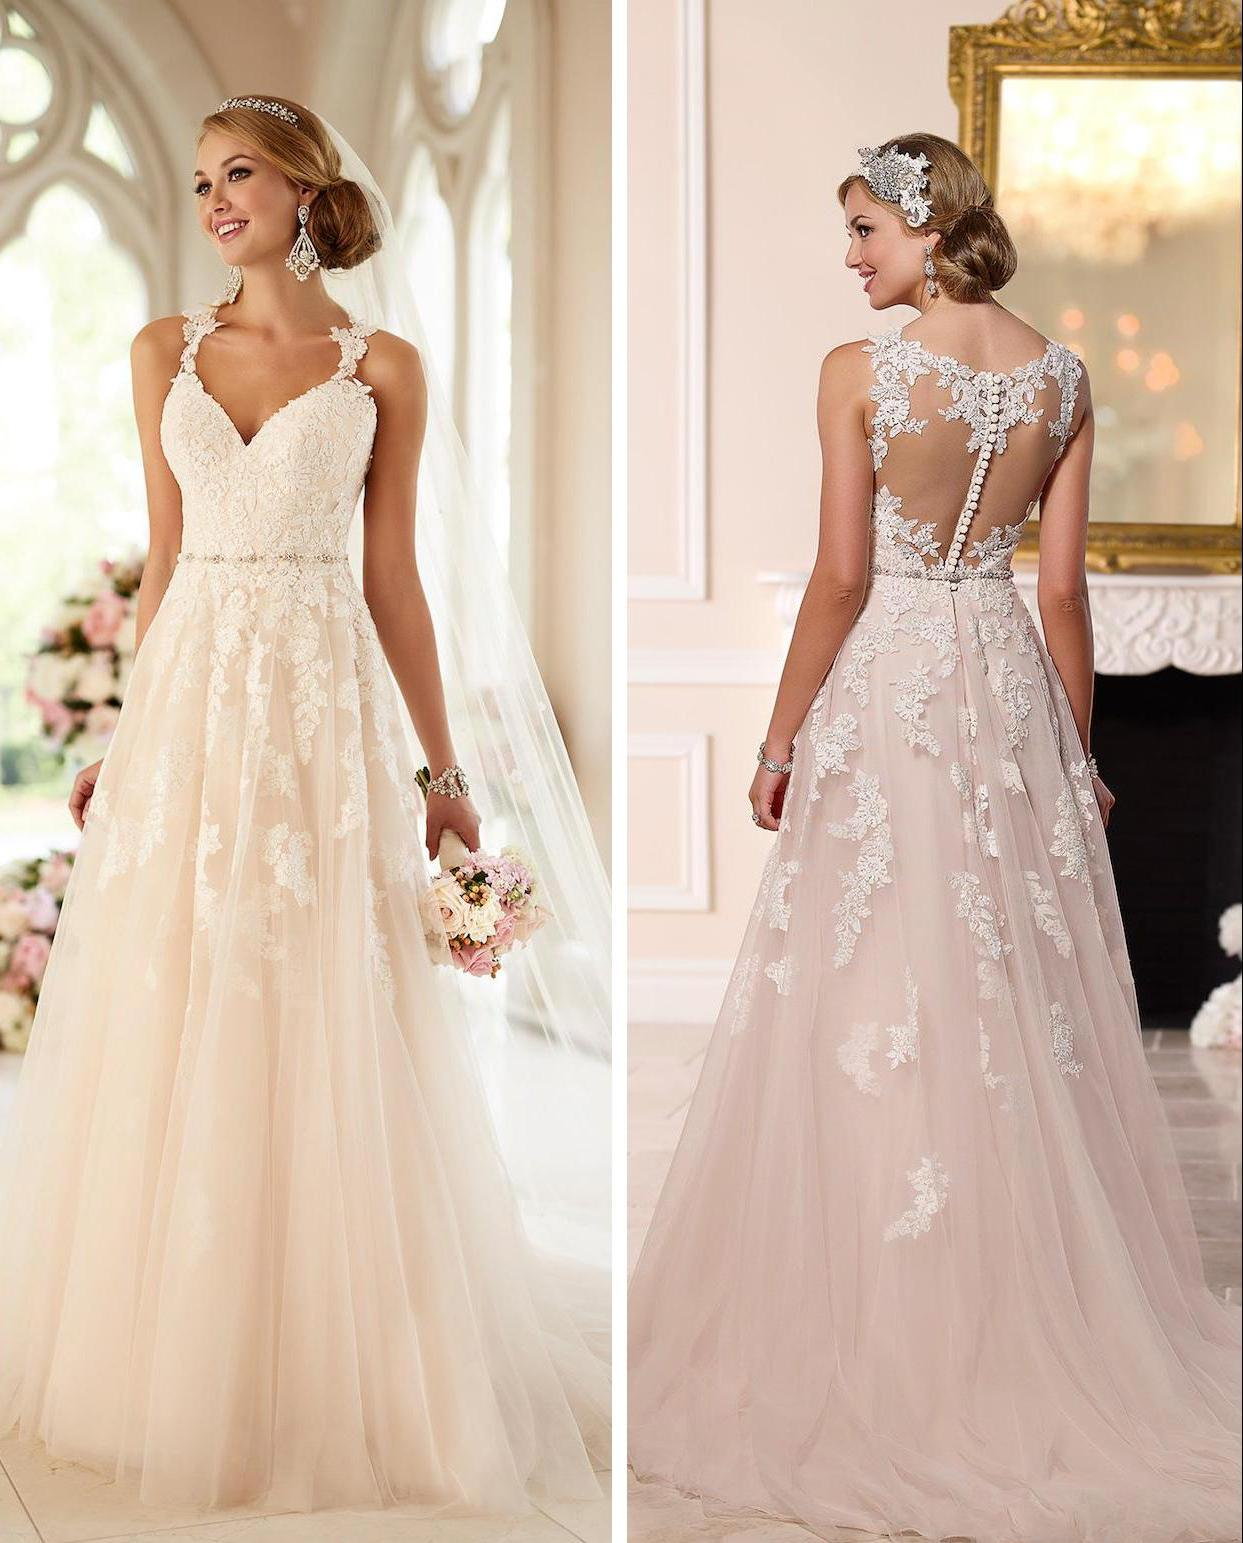 Best Wedding Gown: 31 Incredible Lace Wedding Dresses Ideas